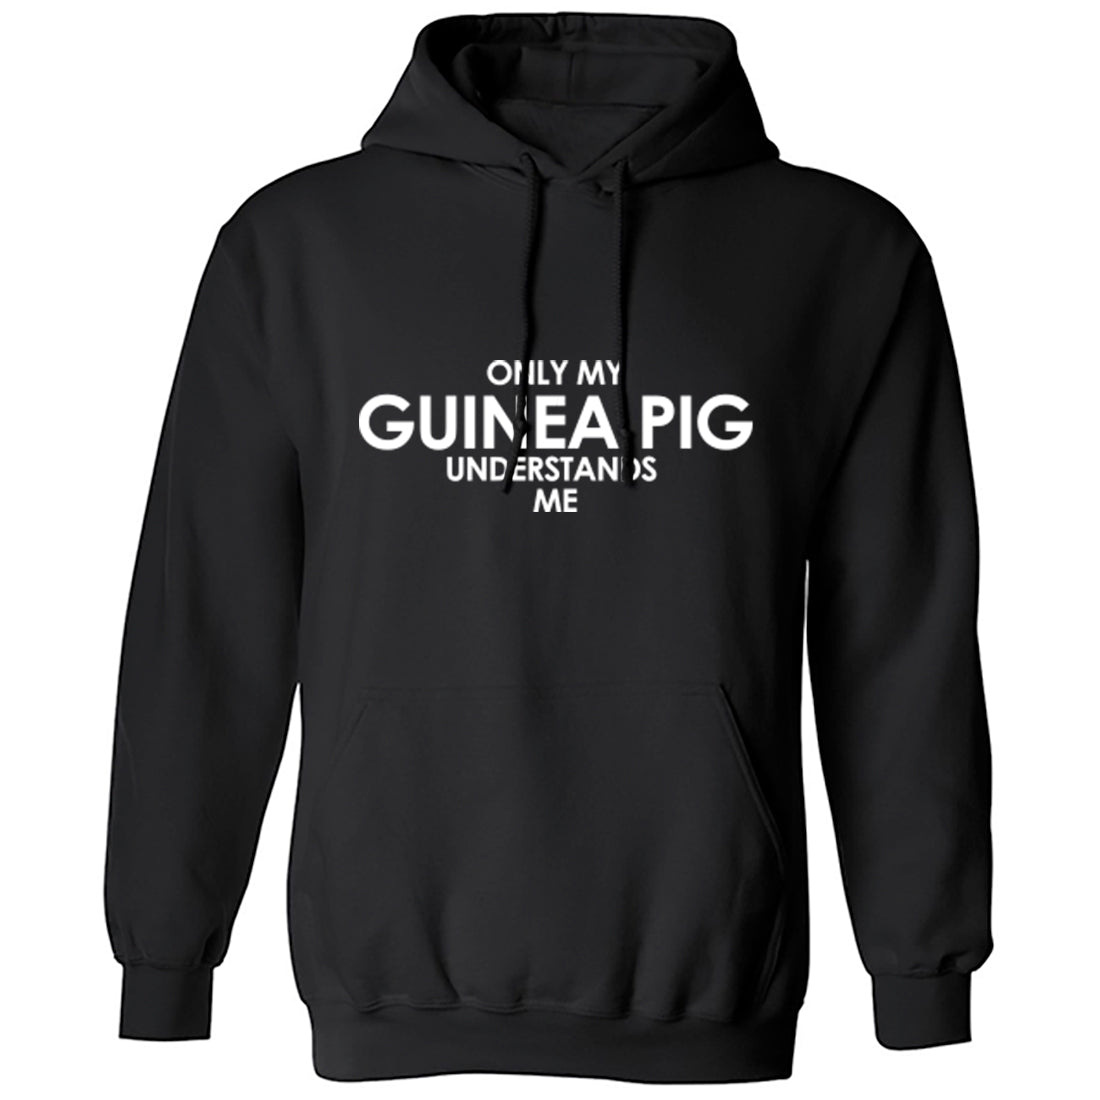 Only My Guinea Pig Understands Me Unisex Hoodie K1556 - Illustrated Identity Ltd.